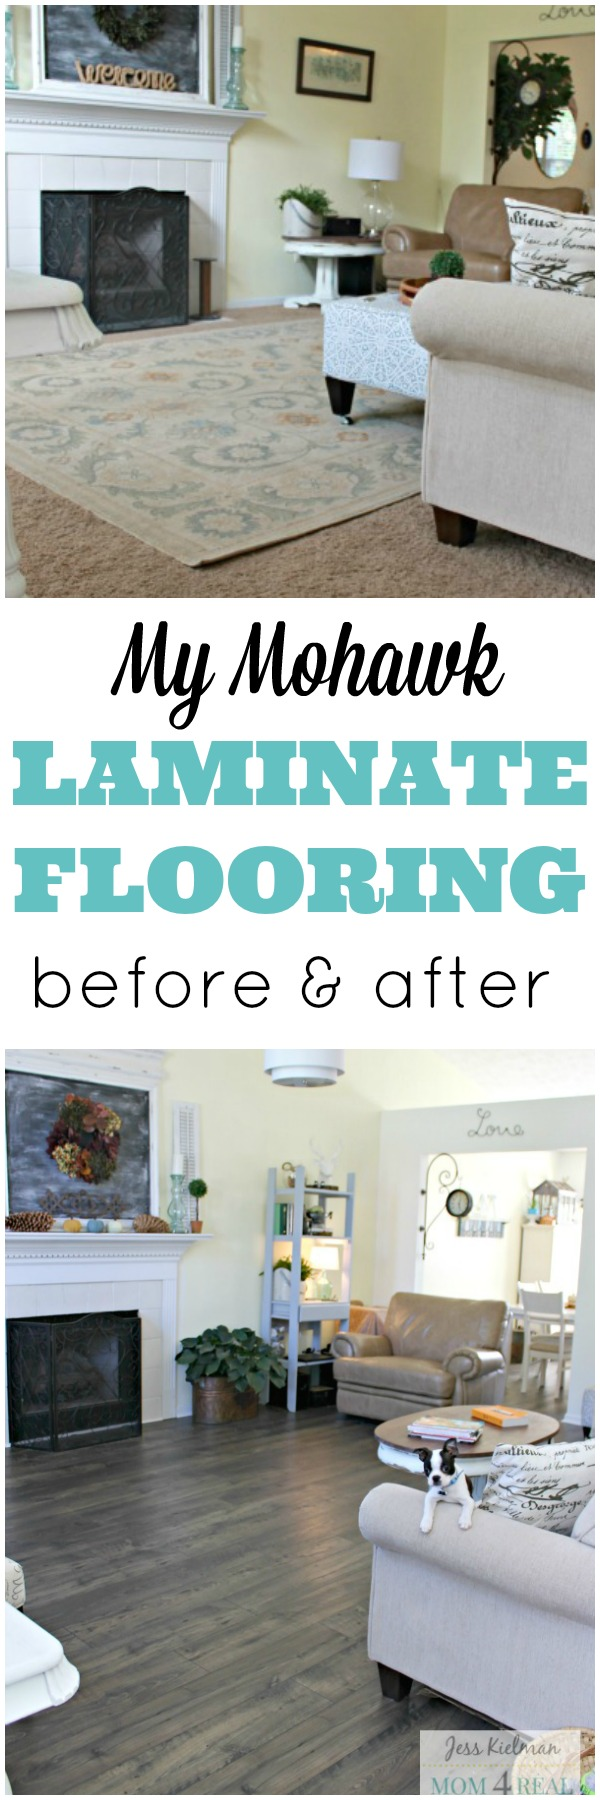 Mohawk-Before-and-After-Laminate-Floors